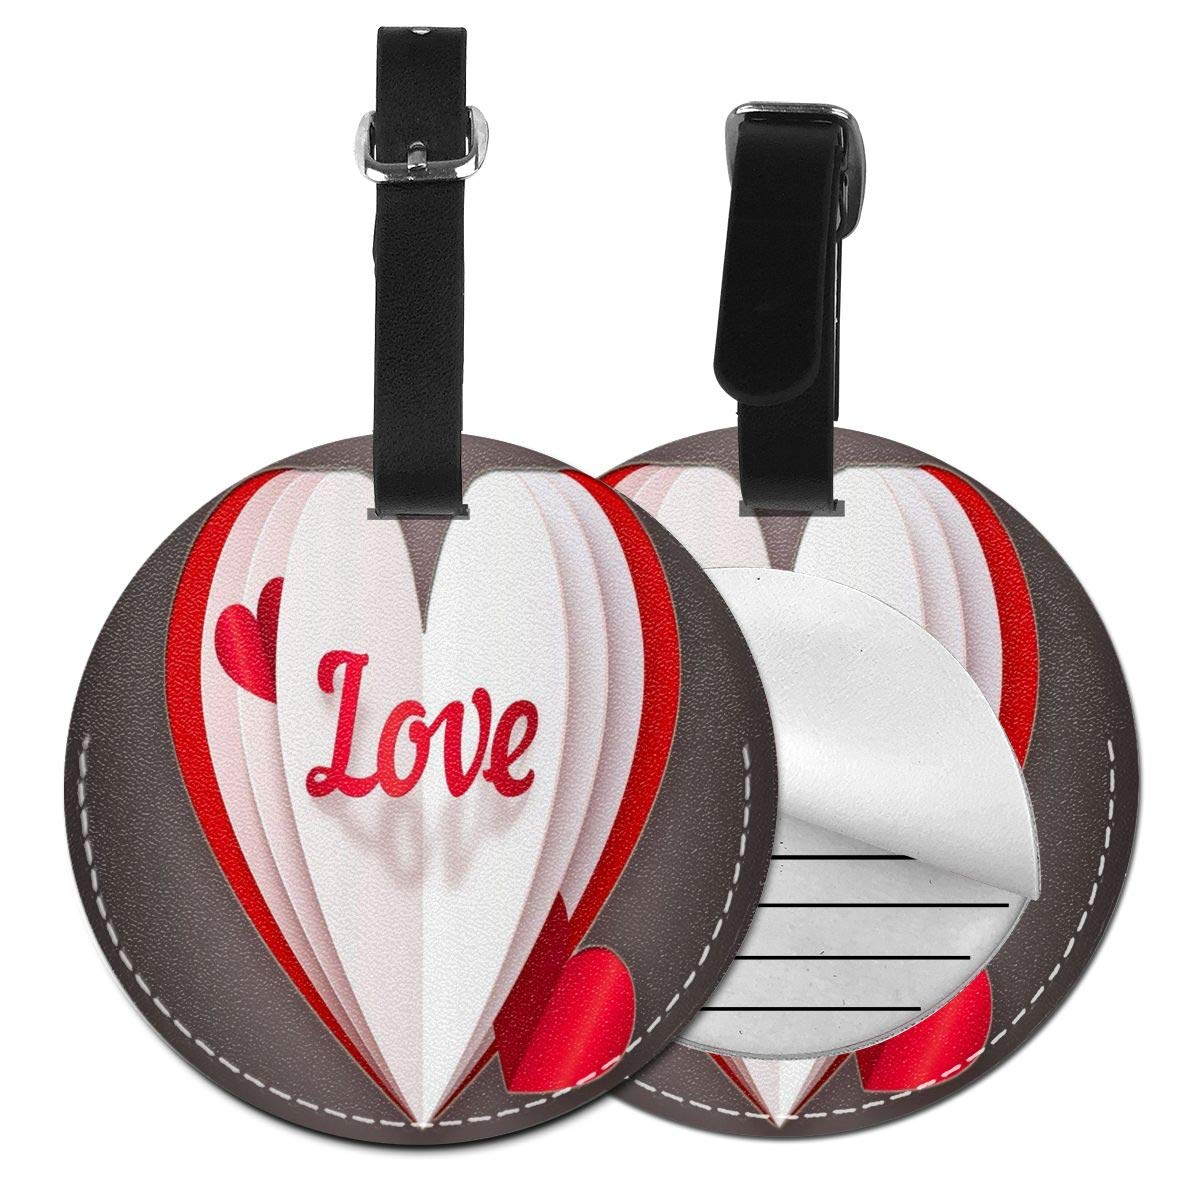 Folded Heart Shape Round Leather Luggage Id Tag Suitcase Backpacks Labels Bag 4 Pack by Rachel Dora